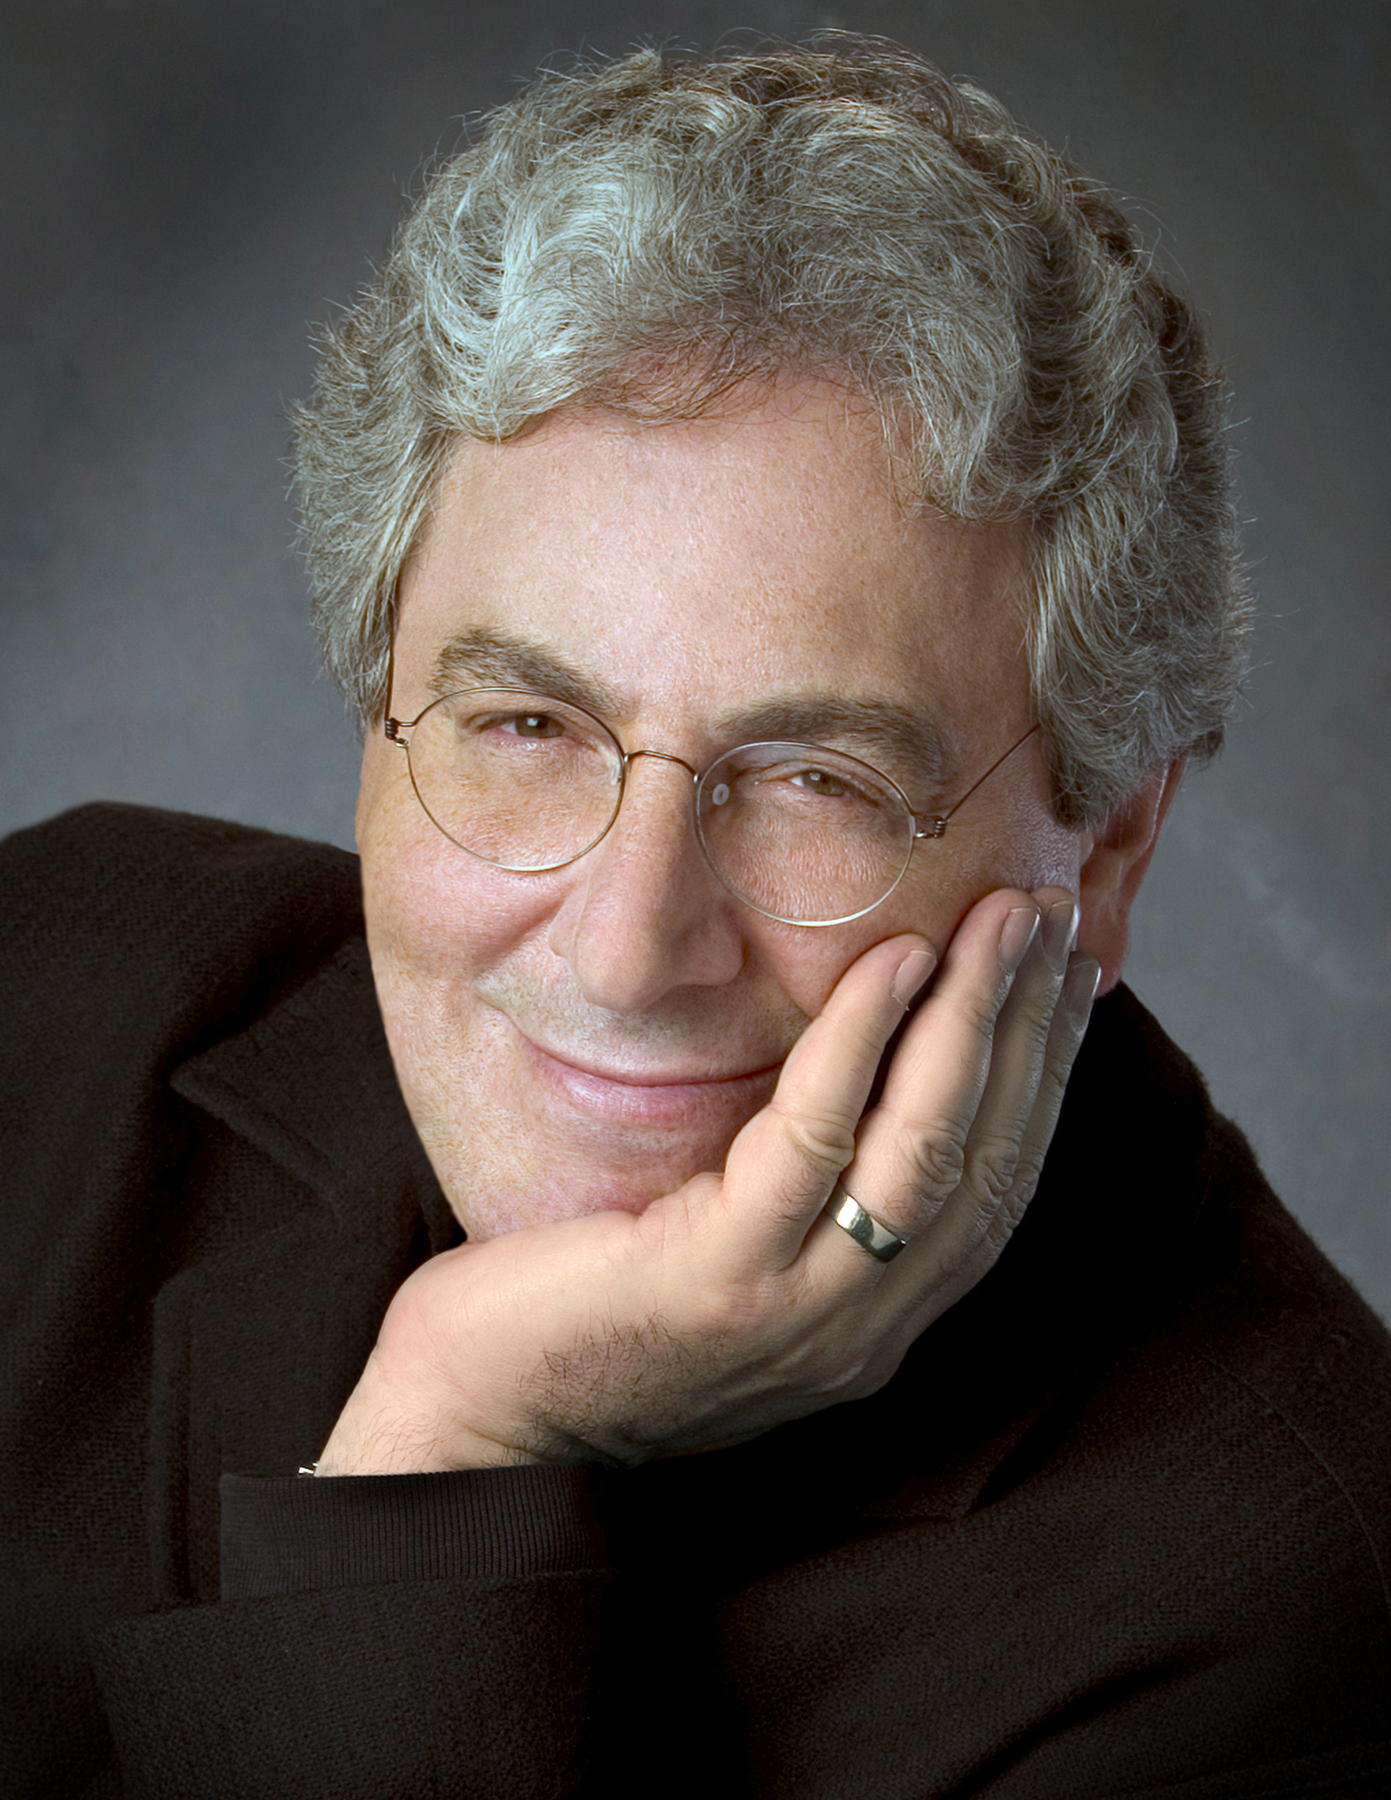 One year later remembering harold ramis as the king midas of comedies